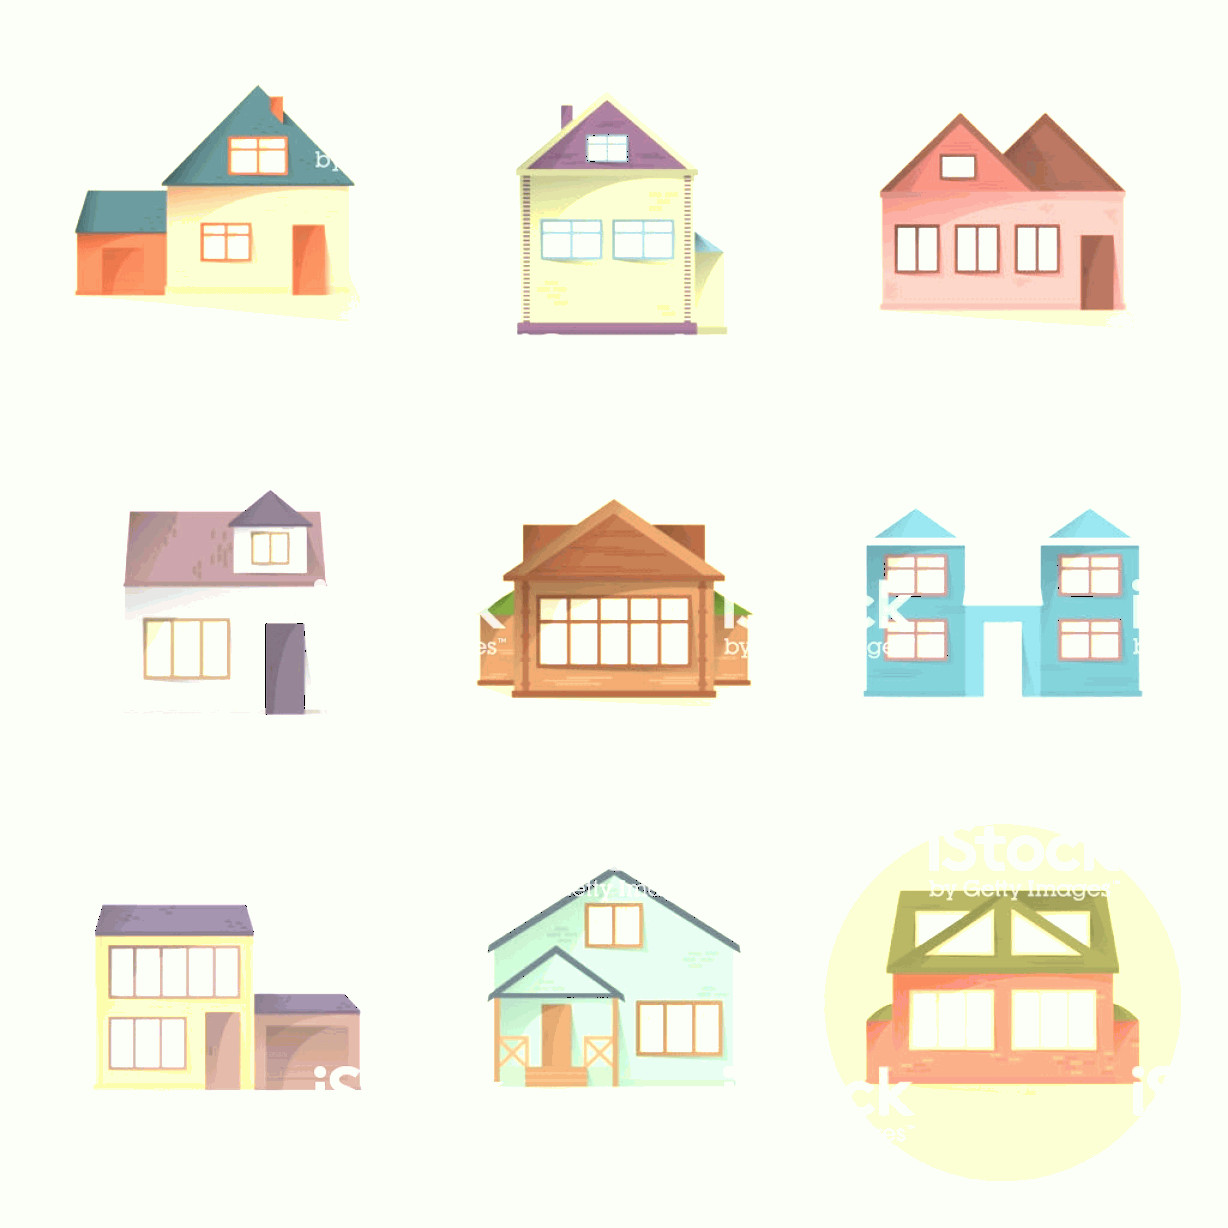 Flat Vector House: House Icons Set Different Type Of Houses Building Facades Semi Flat Style With Gm